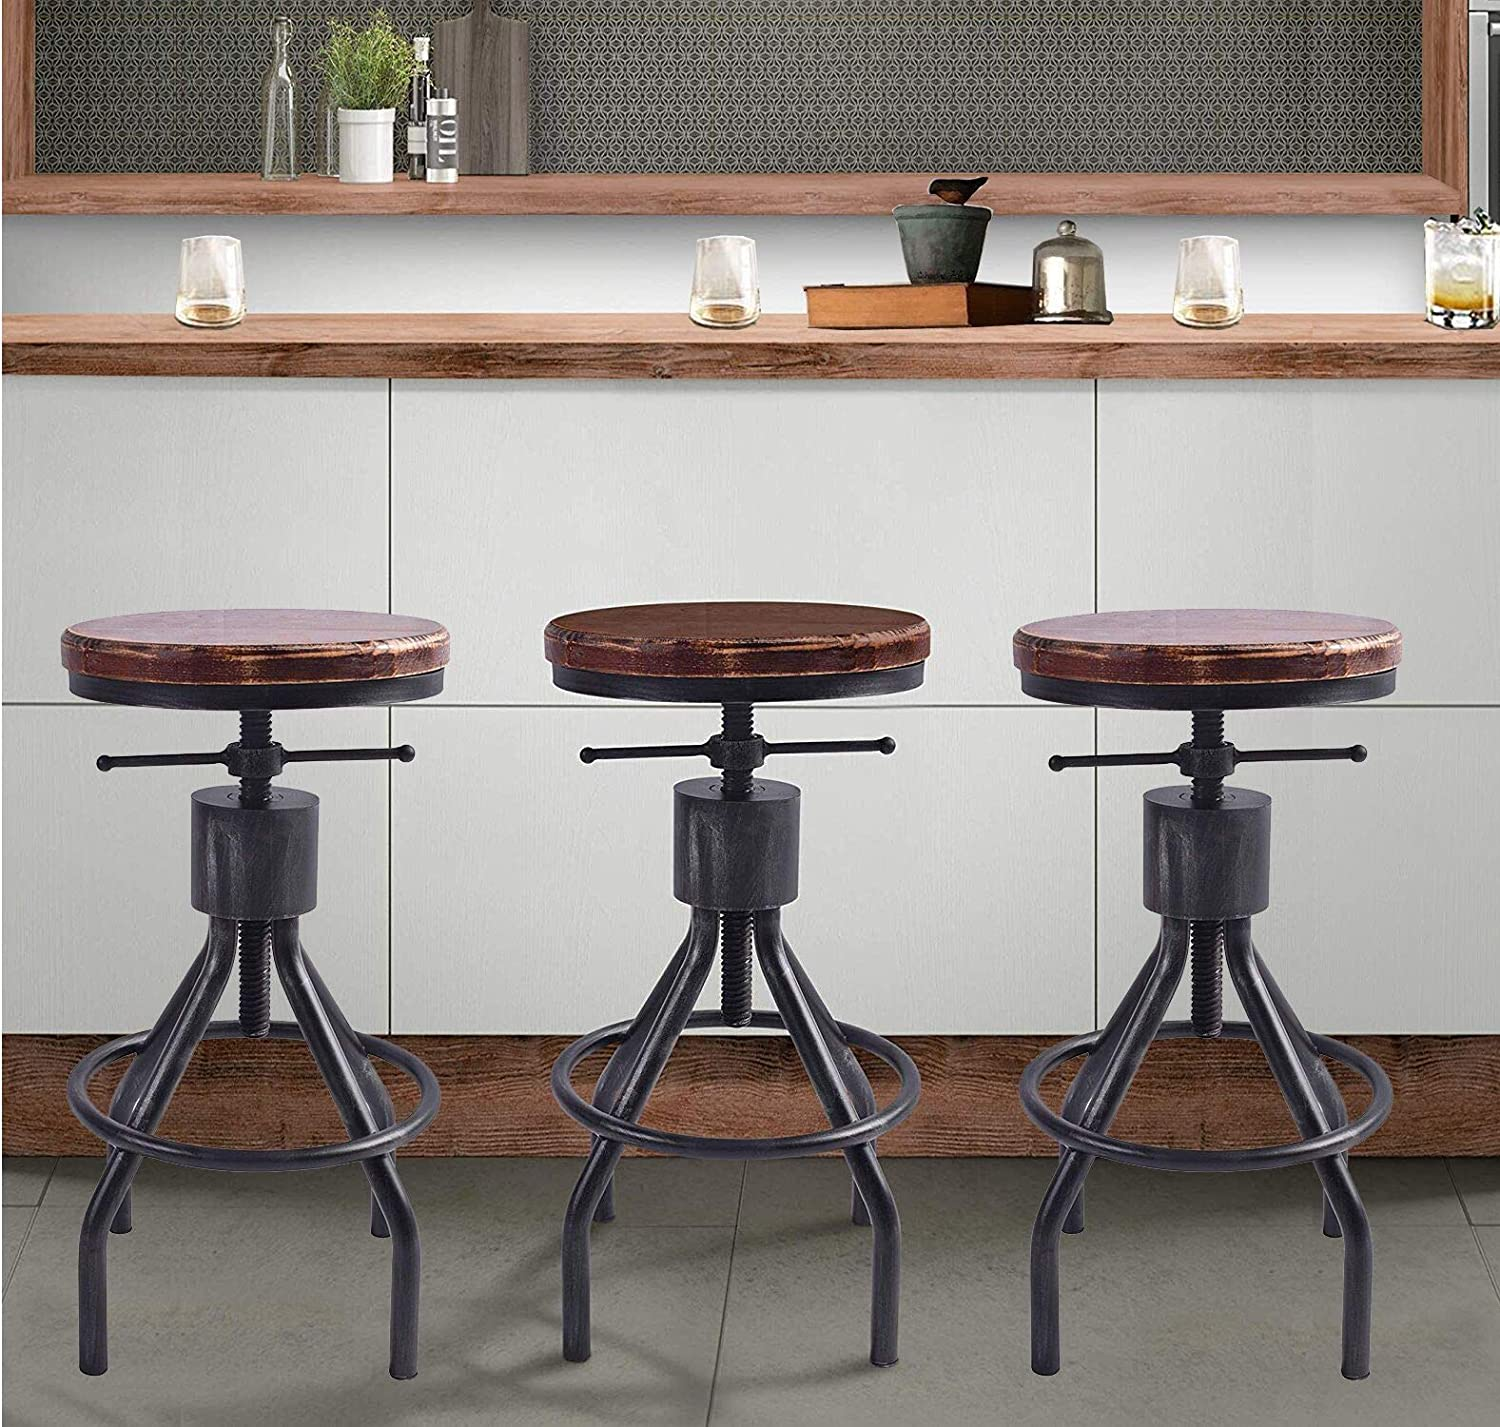 Astounding 51 Unique Bar Stools That Are Cool Addition To Your Kitchen Short Links Chair Design For Home Short Linksinfo